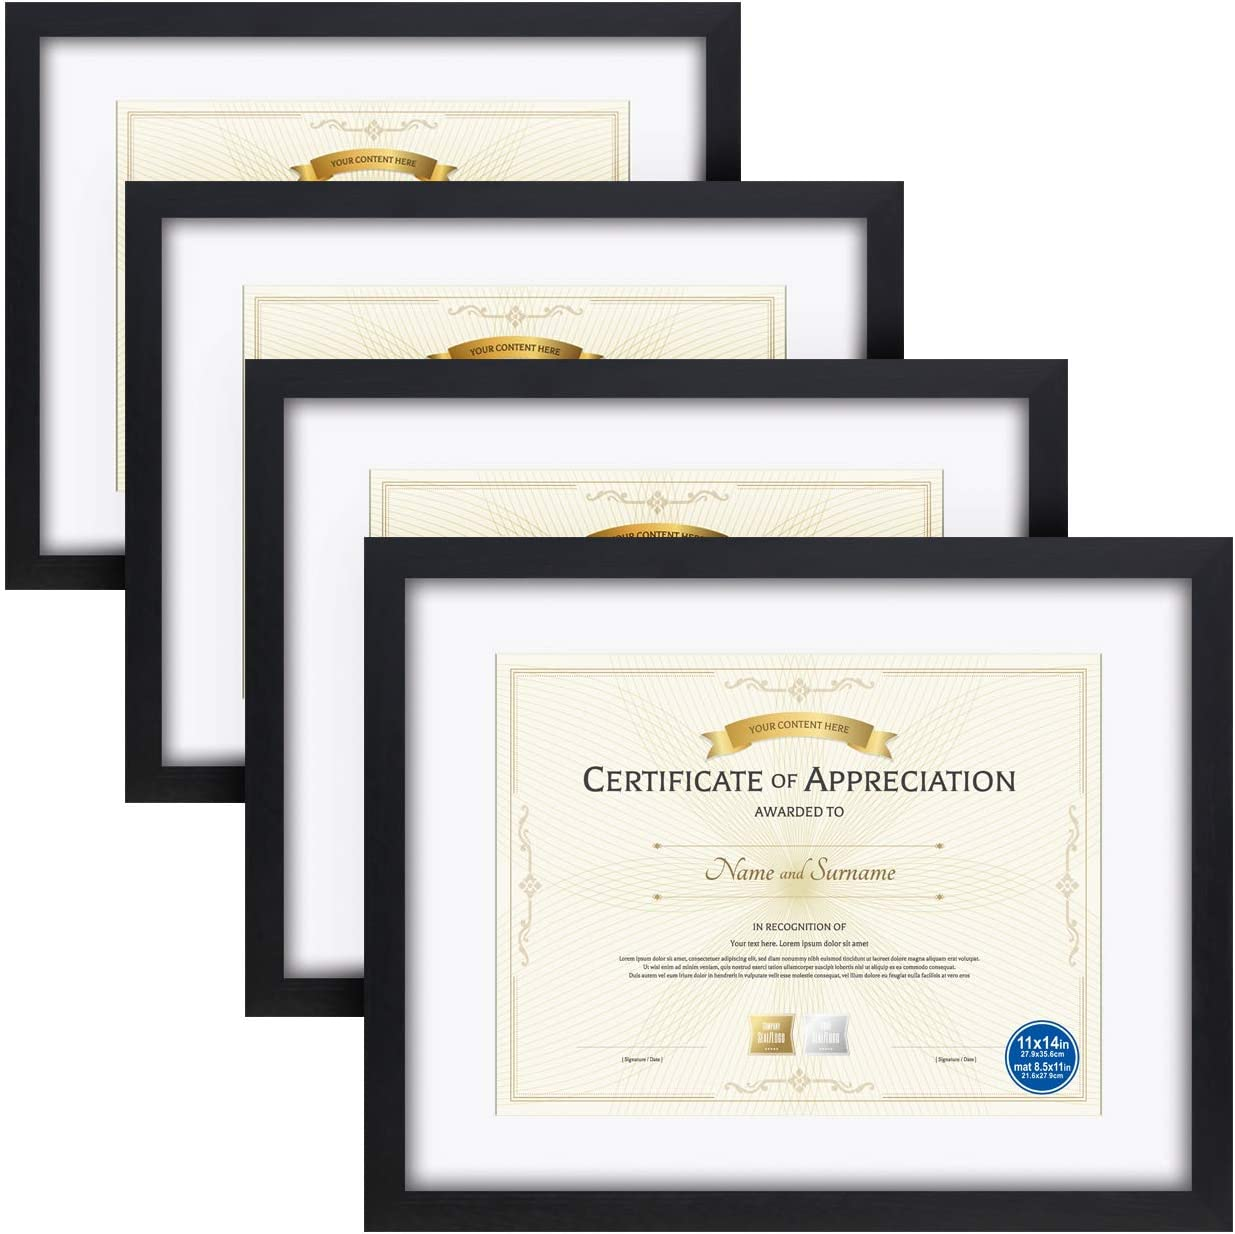 Certificate Opening Max 48% OFF large release sale Frames Document Frame 4PK Made Wood Solid HD Glas of